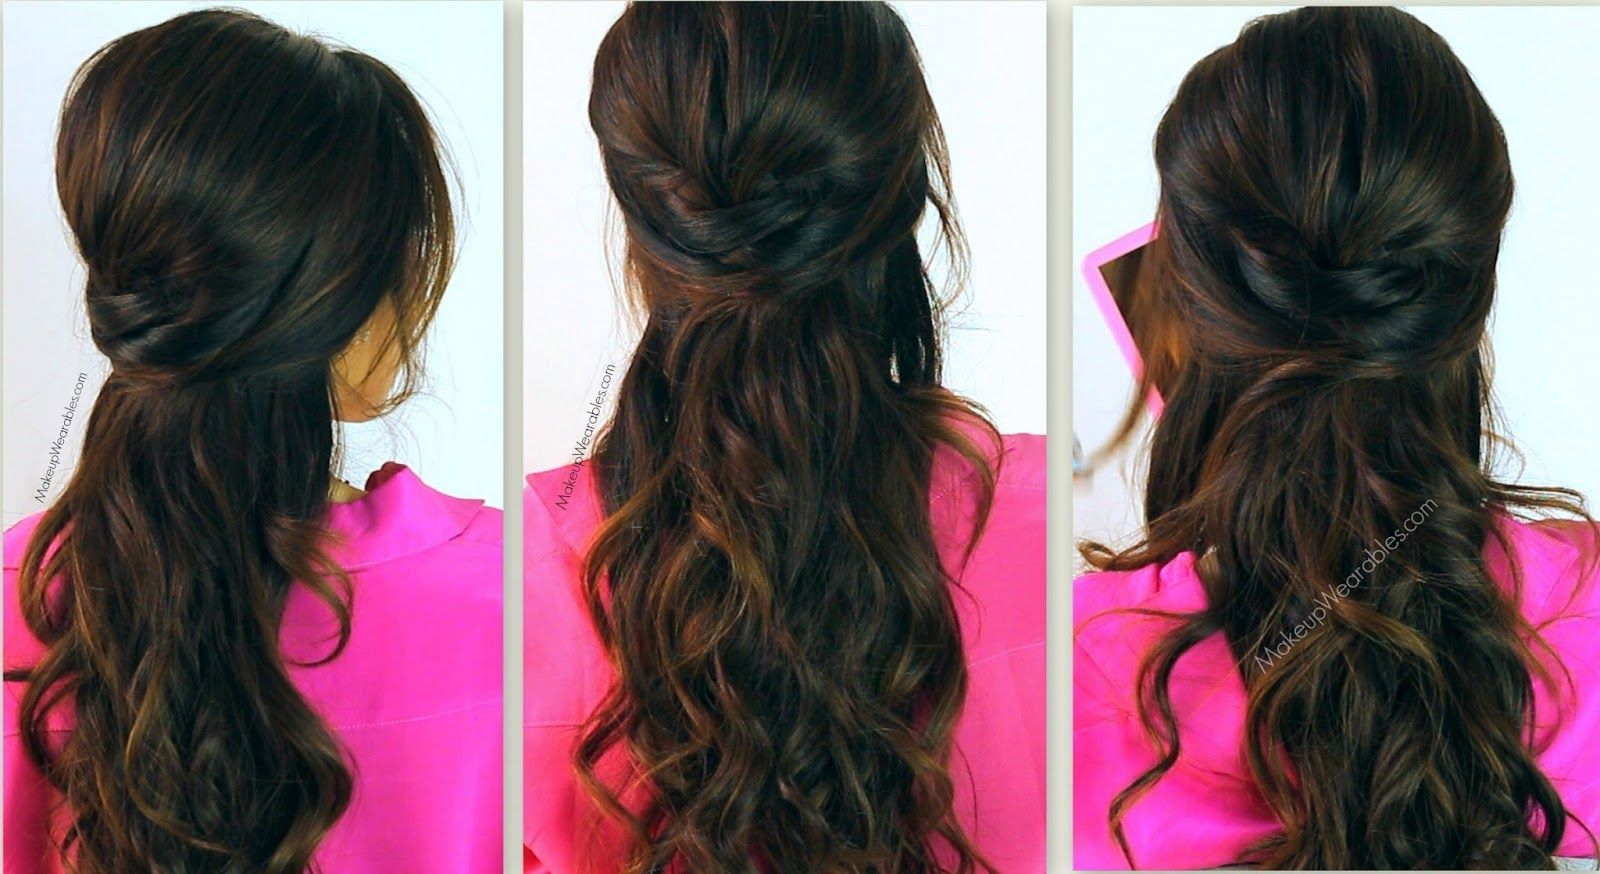 G pixels deb pinterest curl hair tutorials